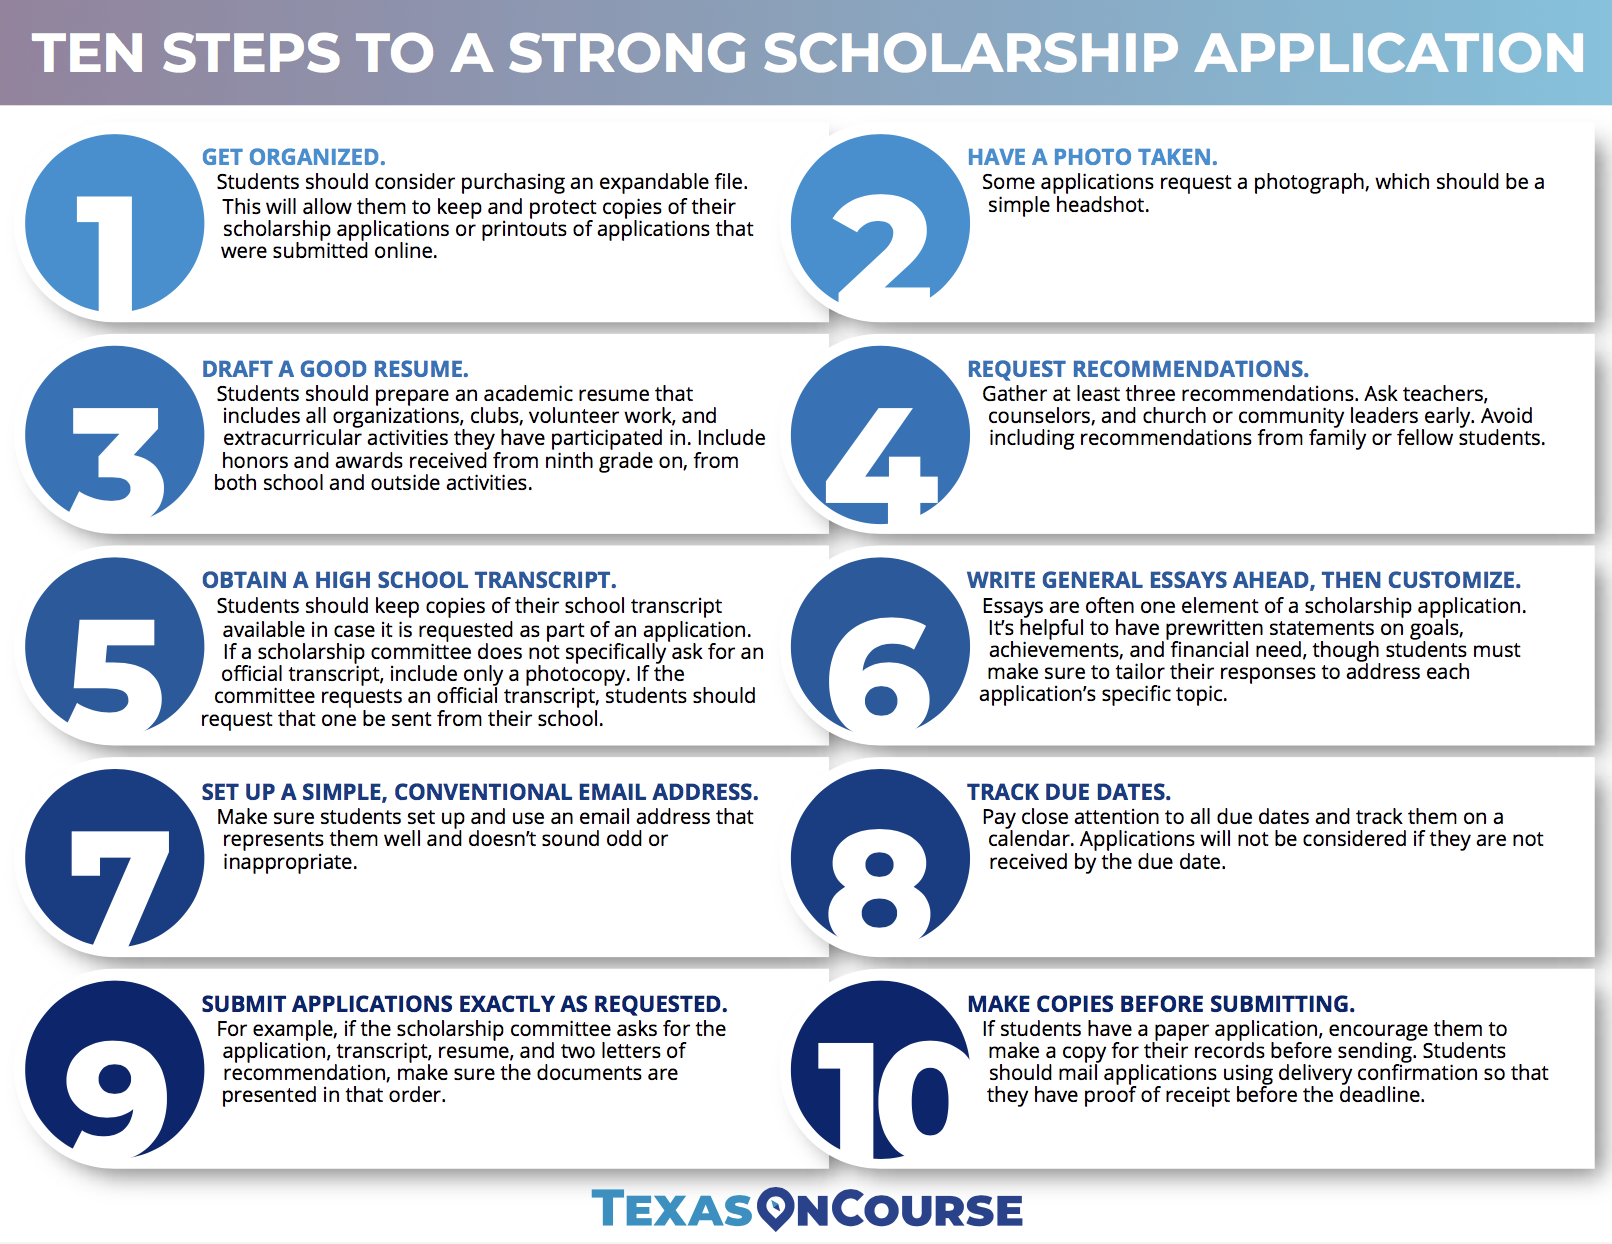 10 Steps to a Strong Scholarship App